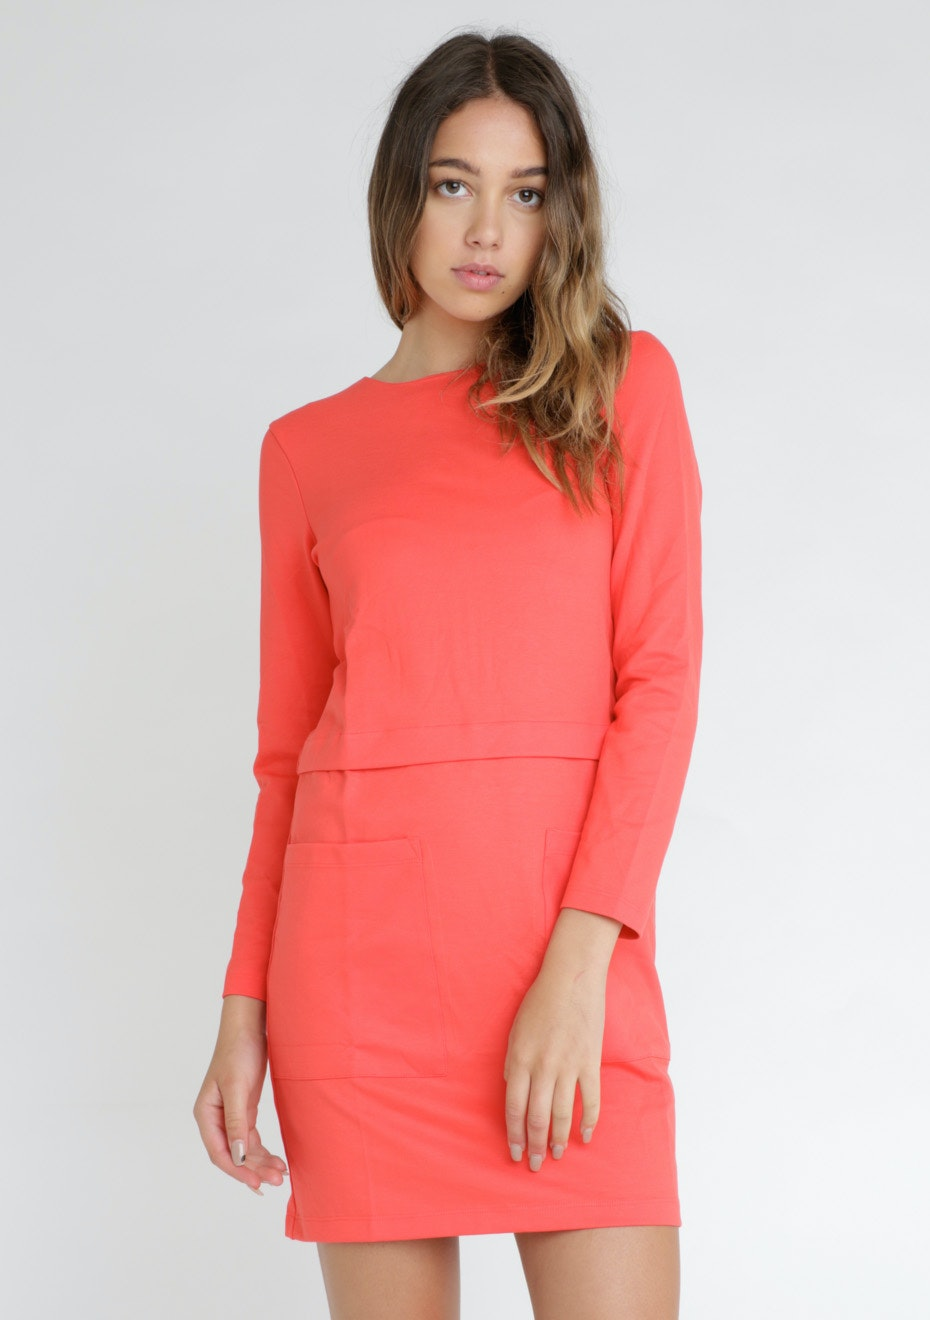 FRENCH CONNECTION - DRESS - RIOT RED